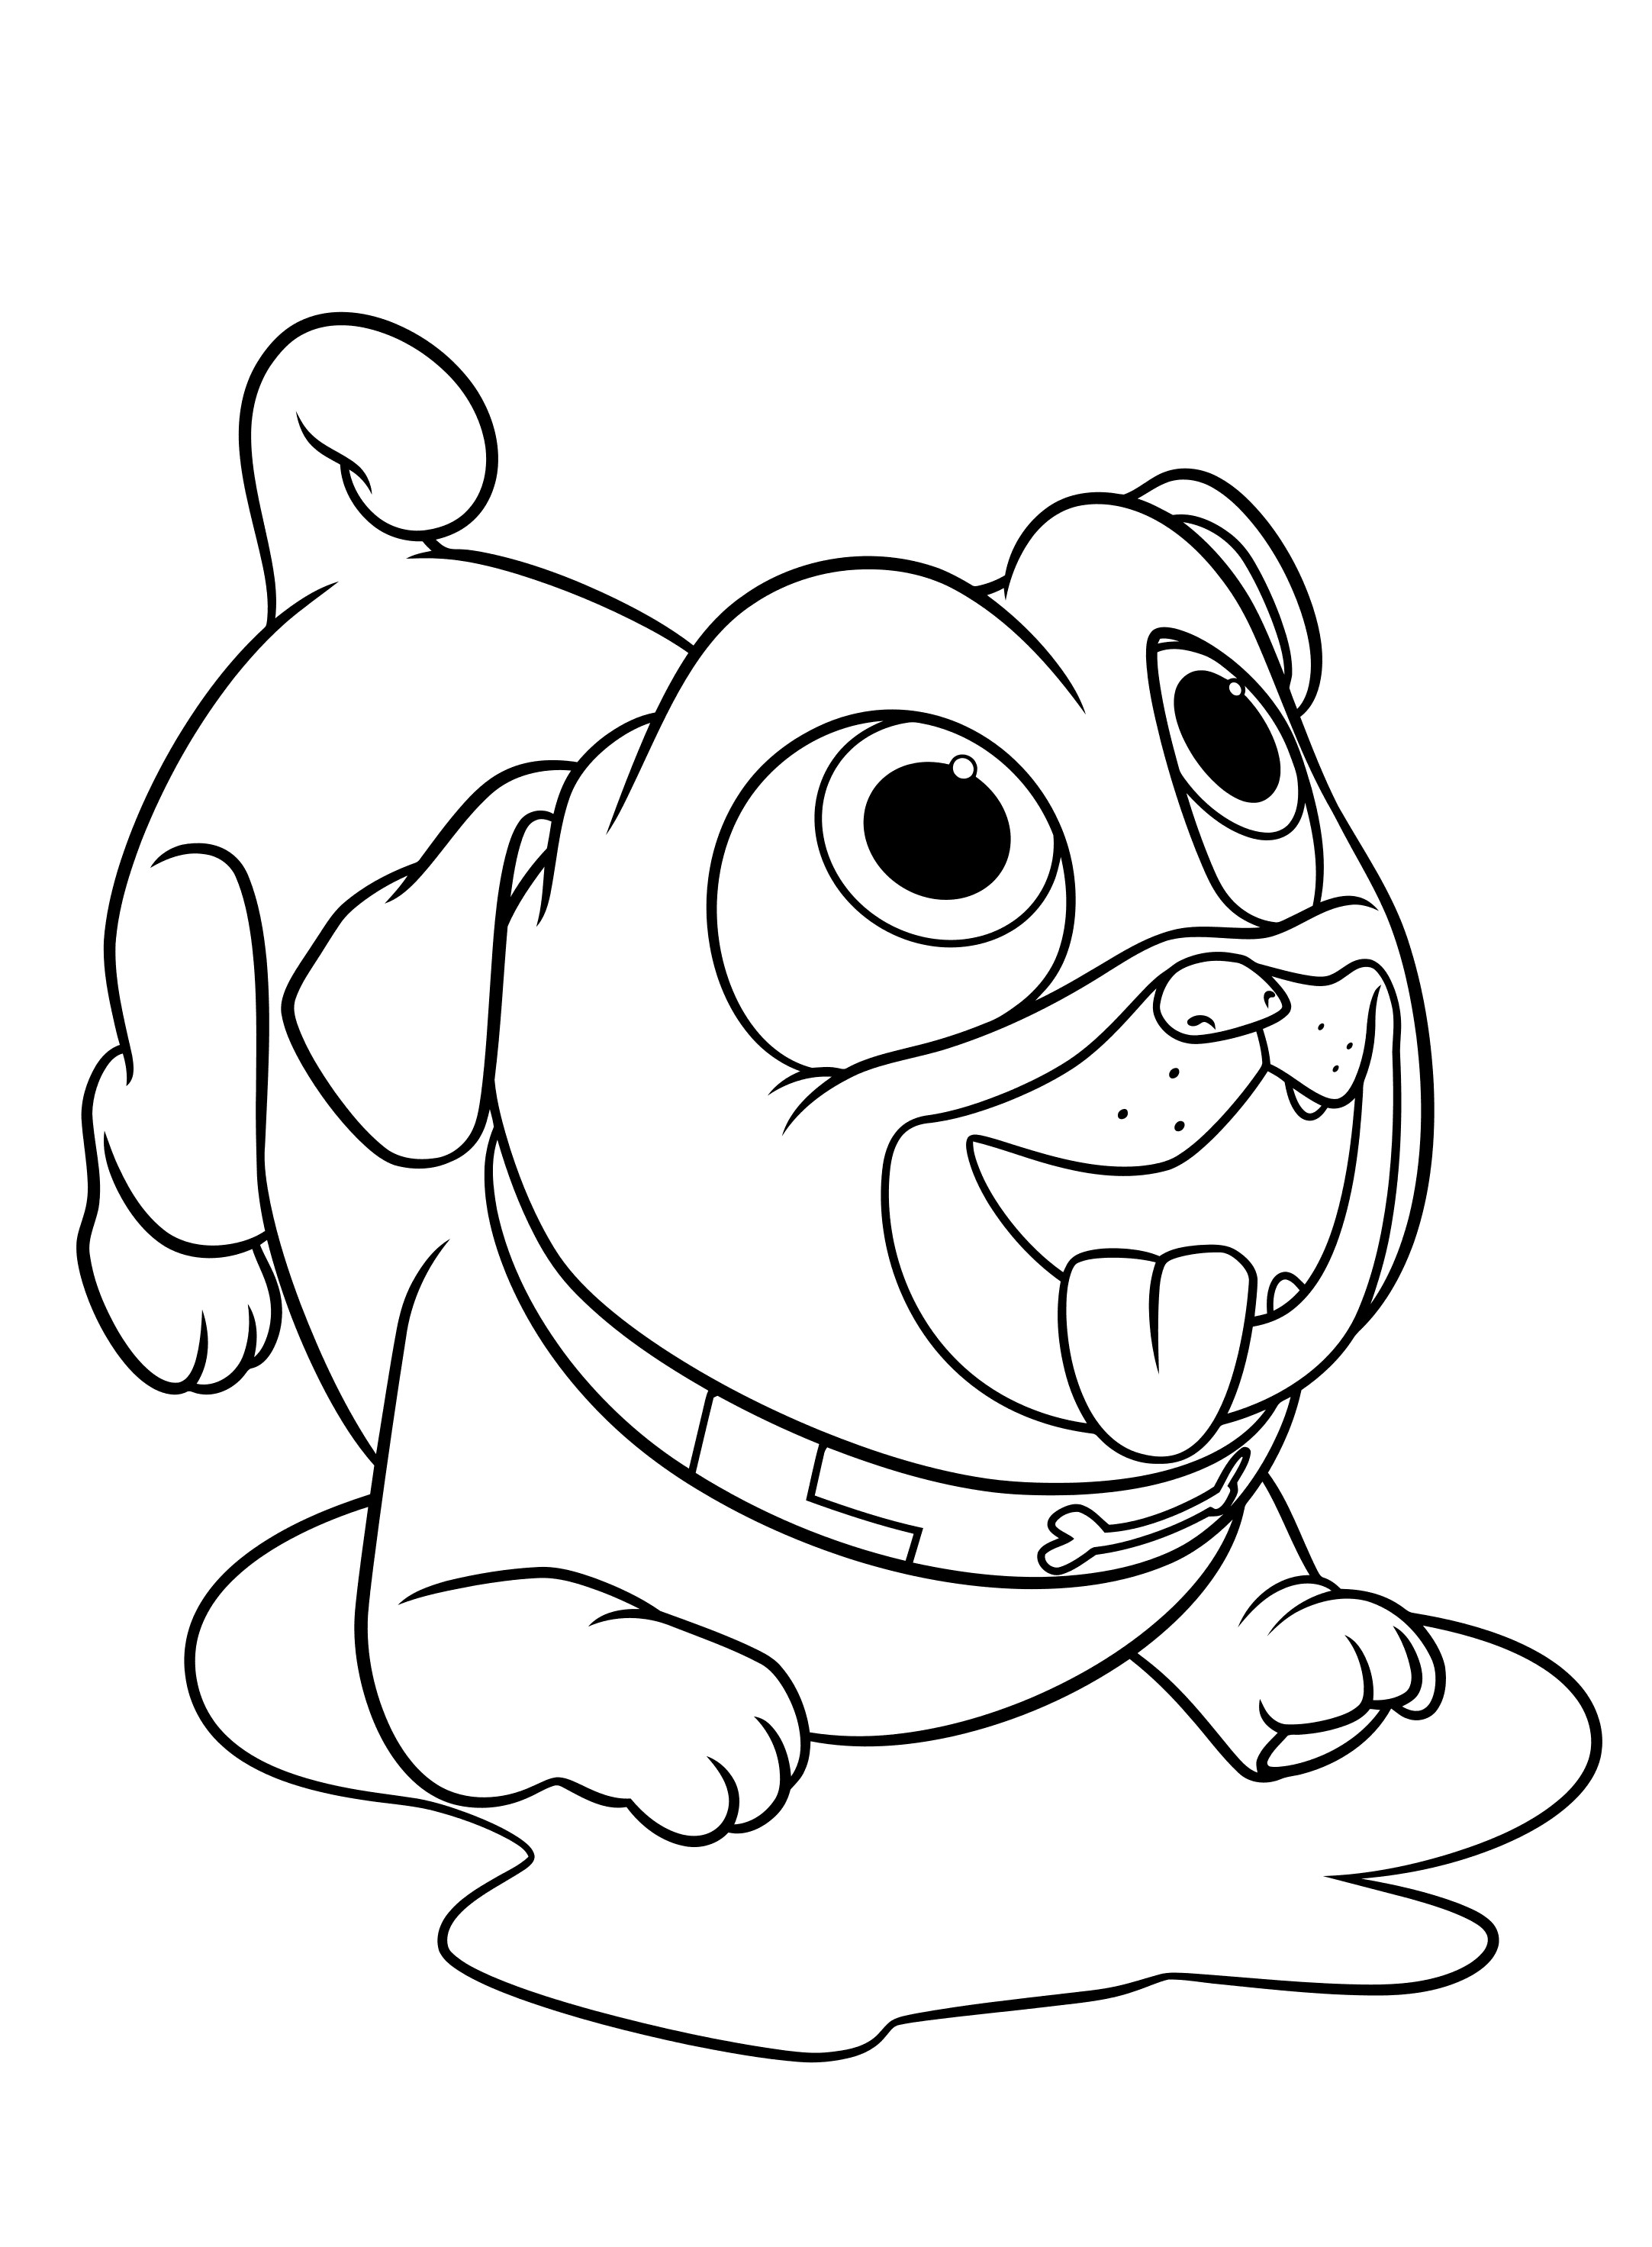 puppy coloring pages printable free puppy coloring pages best coloring pages for kids coloring puppy free printable pages